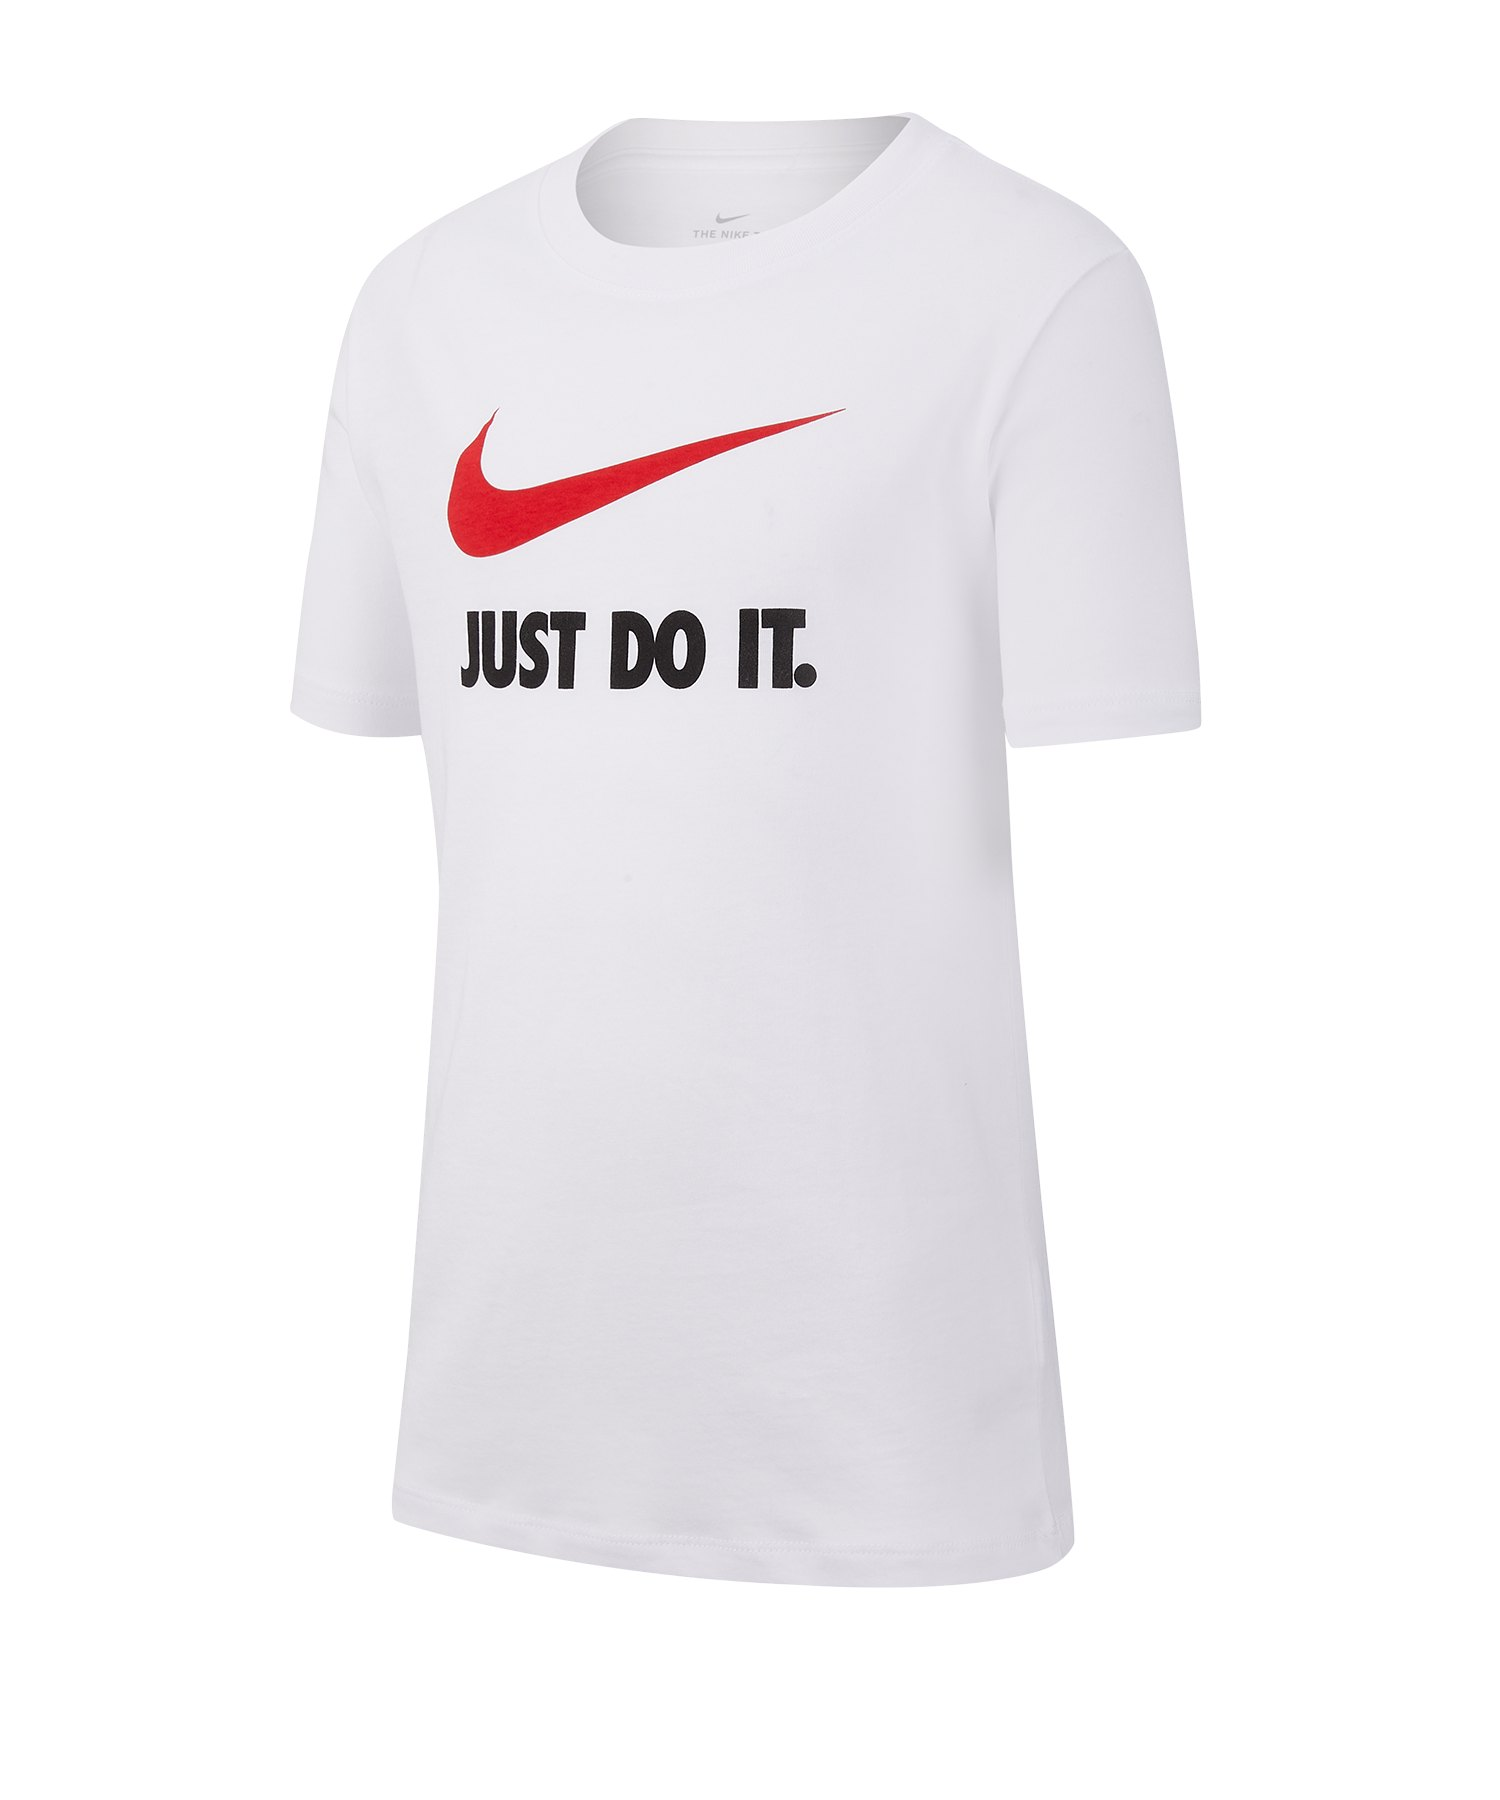 Nike Just Do It Tee T Shirt Weiss F100